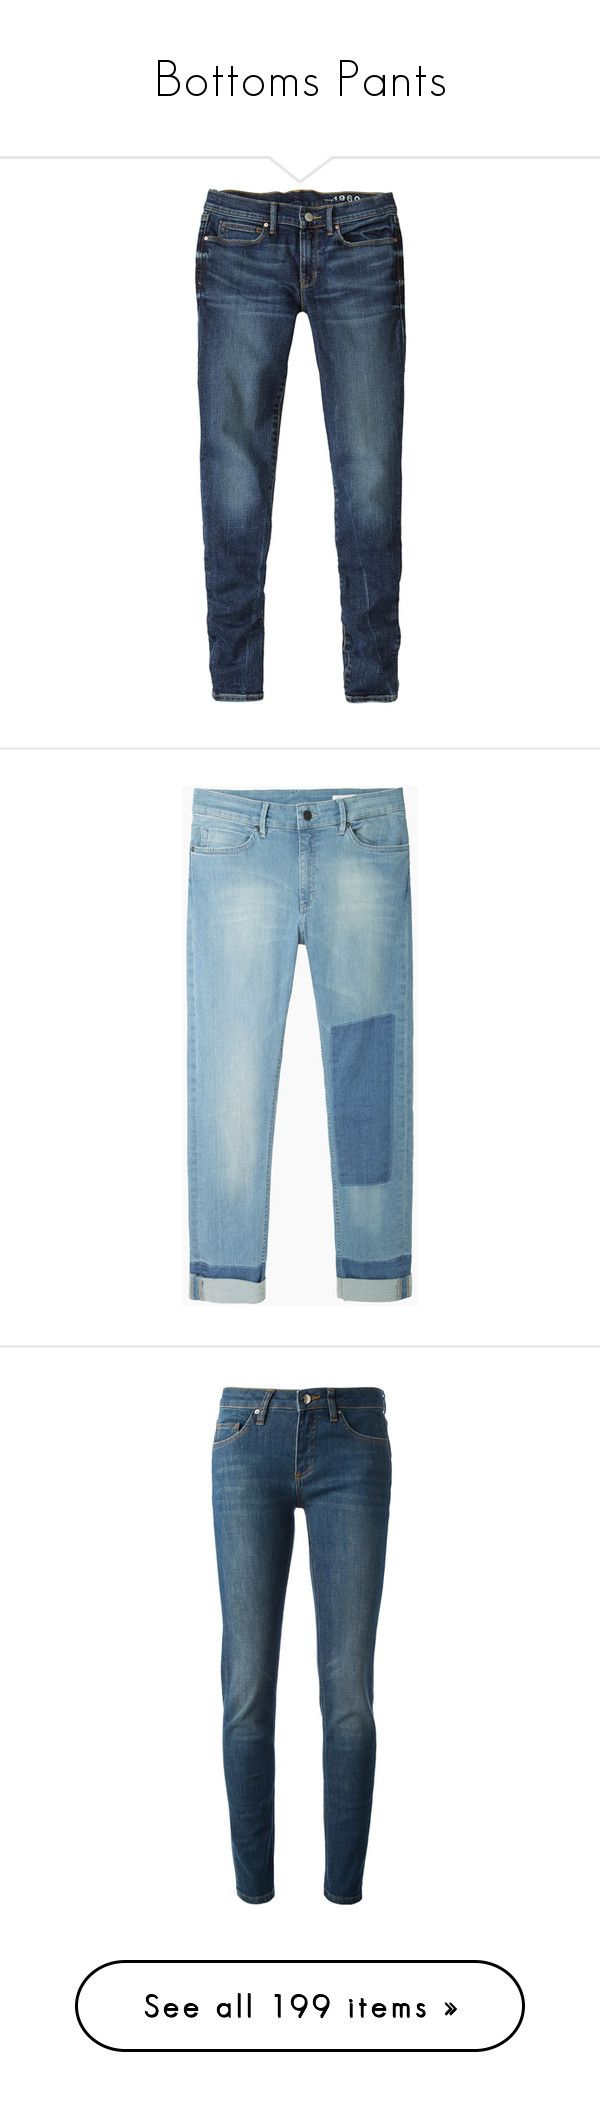 """""""Bottoms Pants"""" by girlwithherheadintheclouds ❤ liked on Polyvore featuring jeans, pants, super skinny jeans, zipper skinny jeans, tall skinny jeans, mid rise jeans, petite skinny jeans, bottoms, denim and cuff jeans"""